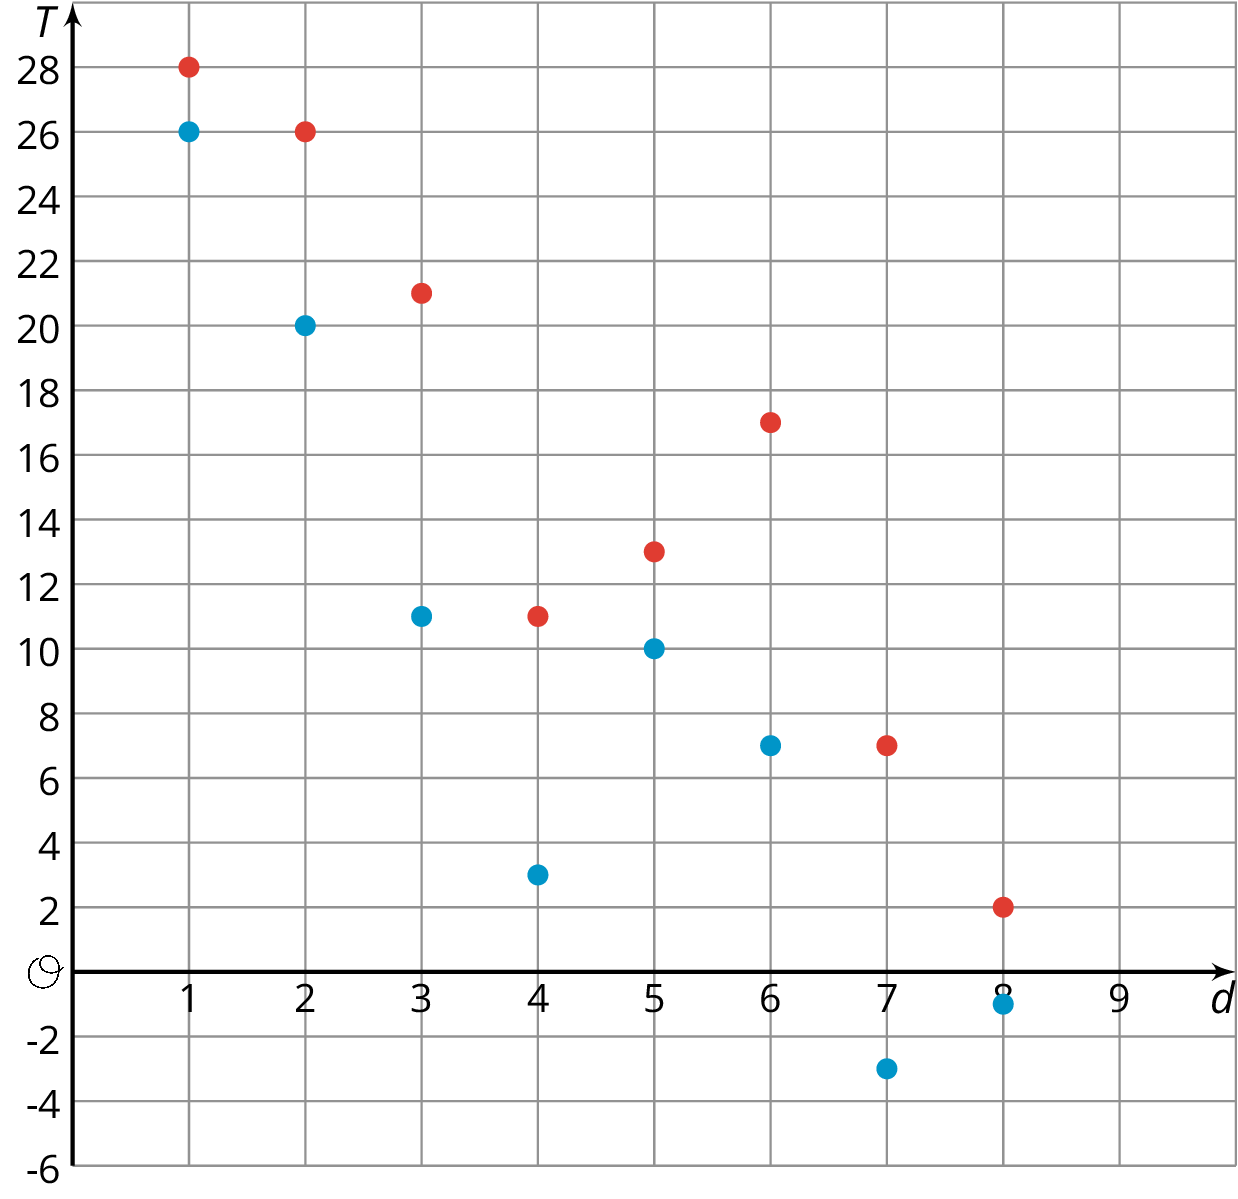 "A graph of 16 points plotted on a coordinate plane with the origin labeled ""O"". The numbers 1 through 9 are indicated on the the d axis. The numbers negative 6 through 28, in increments of 2, are indicated on the T axis.  The data points are presented in the following 8 groups.  Group 1. 1 comma 28 and 1 comma 26. Group 2. 2 comma 26 and 2 comma 20. Group 3. 3 comma 21 nad 3 comma 11. Group 4. 4 comma 11 and 4 comma 3. Group 5. 5 comma 13 and 5 comma 10. Group 6. 6 comma 17 and 7 comma 7. Group 7. 7 comma 7 and 7 comma negative 3. Group 8. 8 comma 2 and 8 comma negative 1."